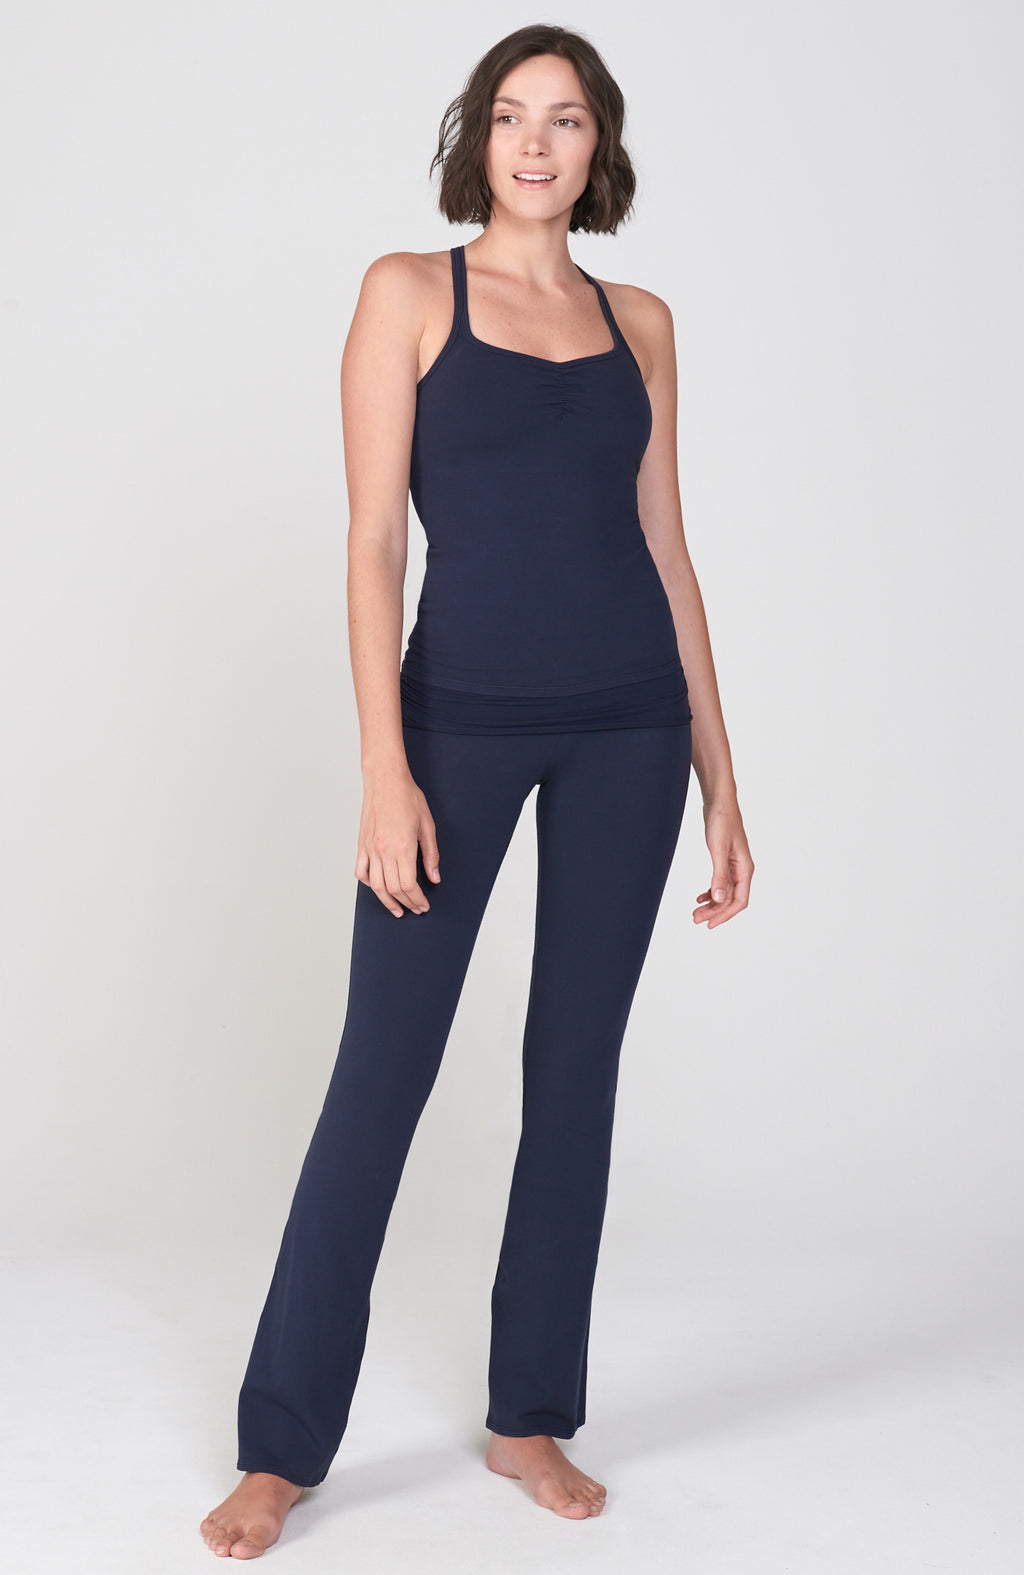 Ruched Bootcut Flare Practice Pant in Navy